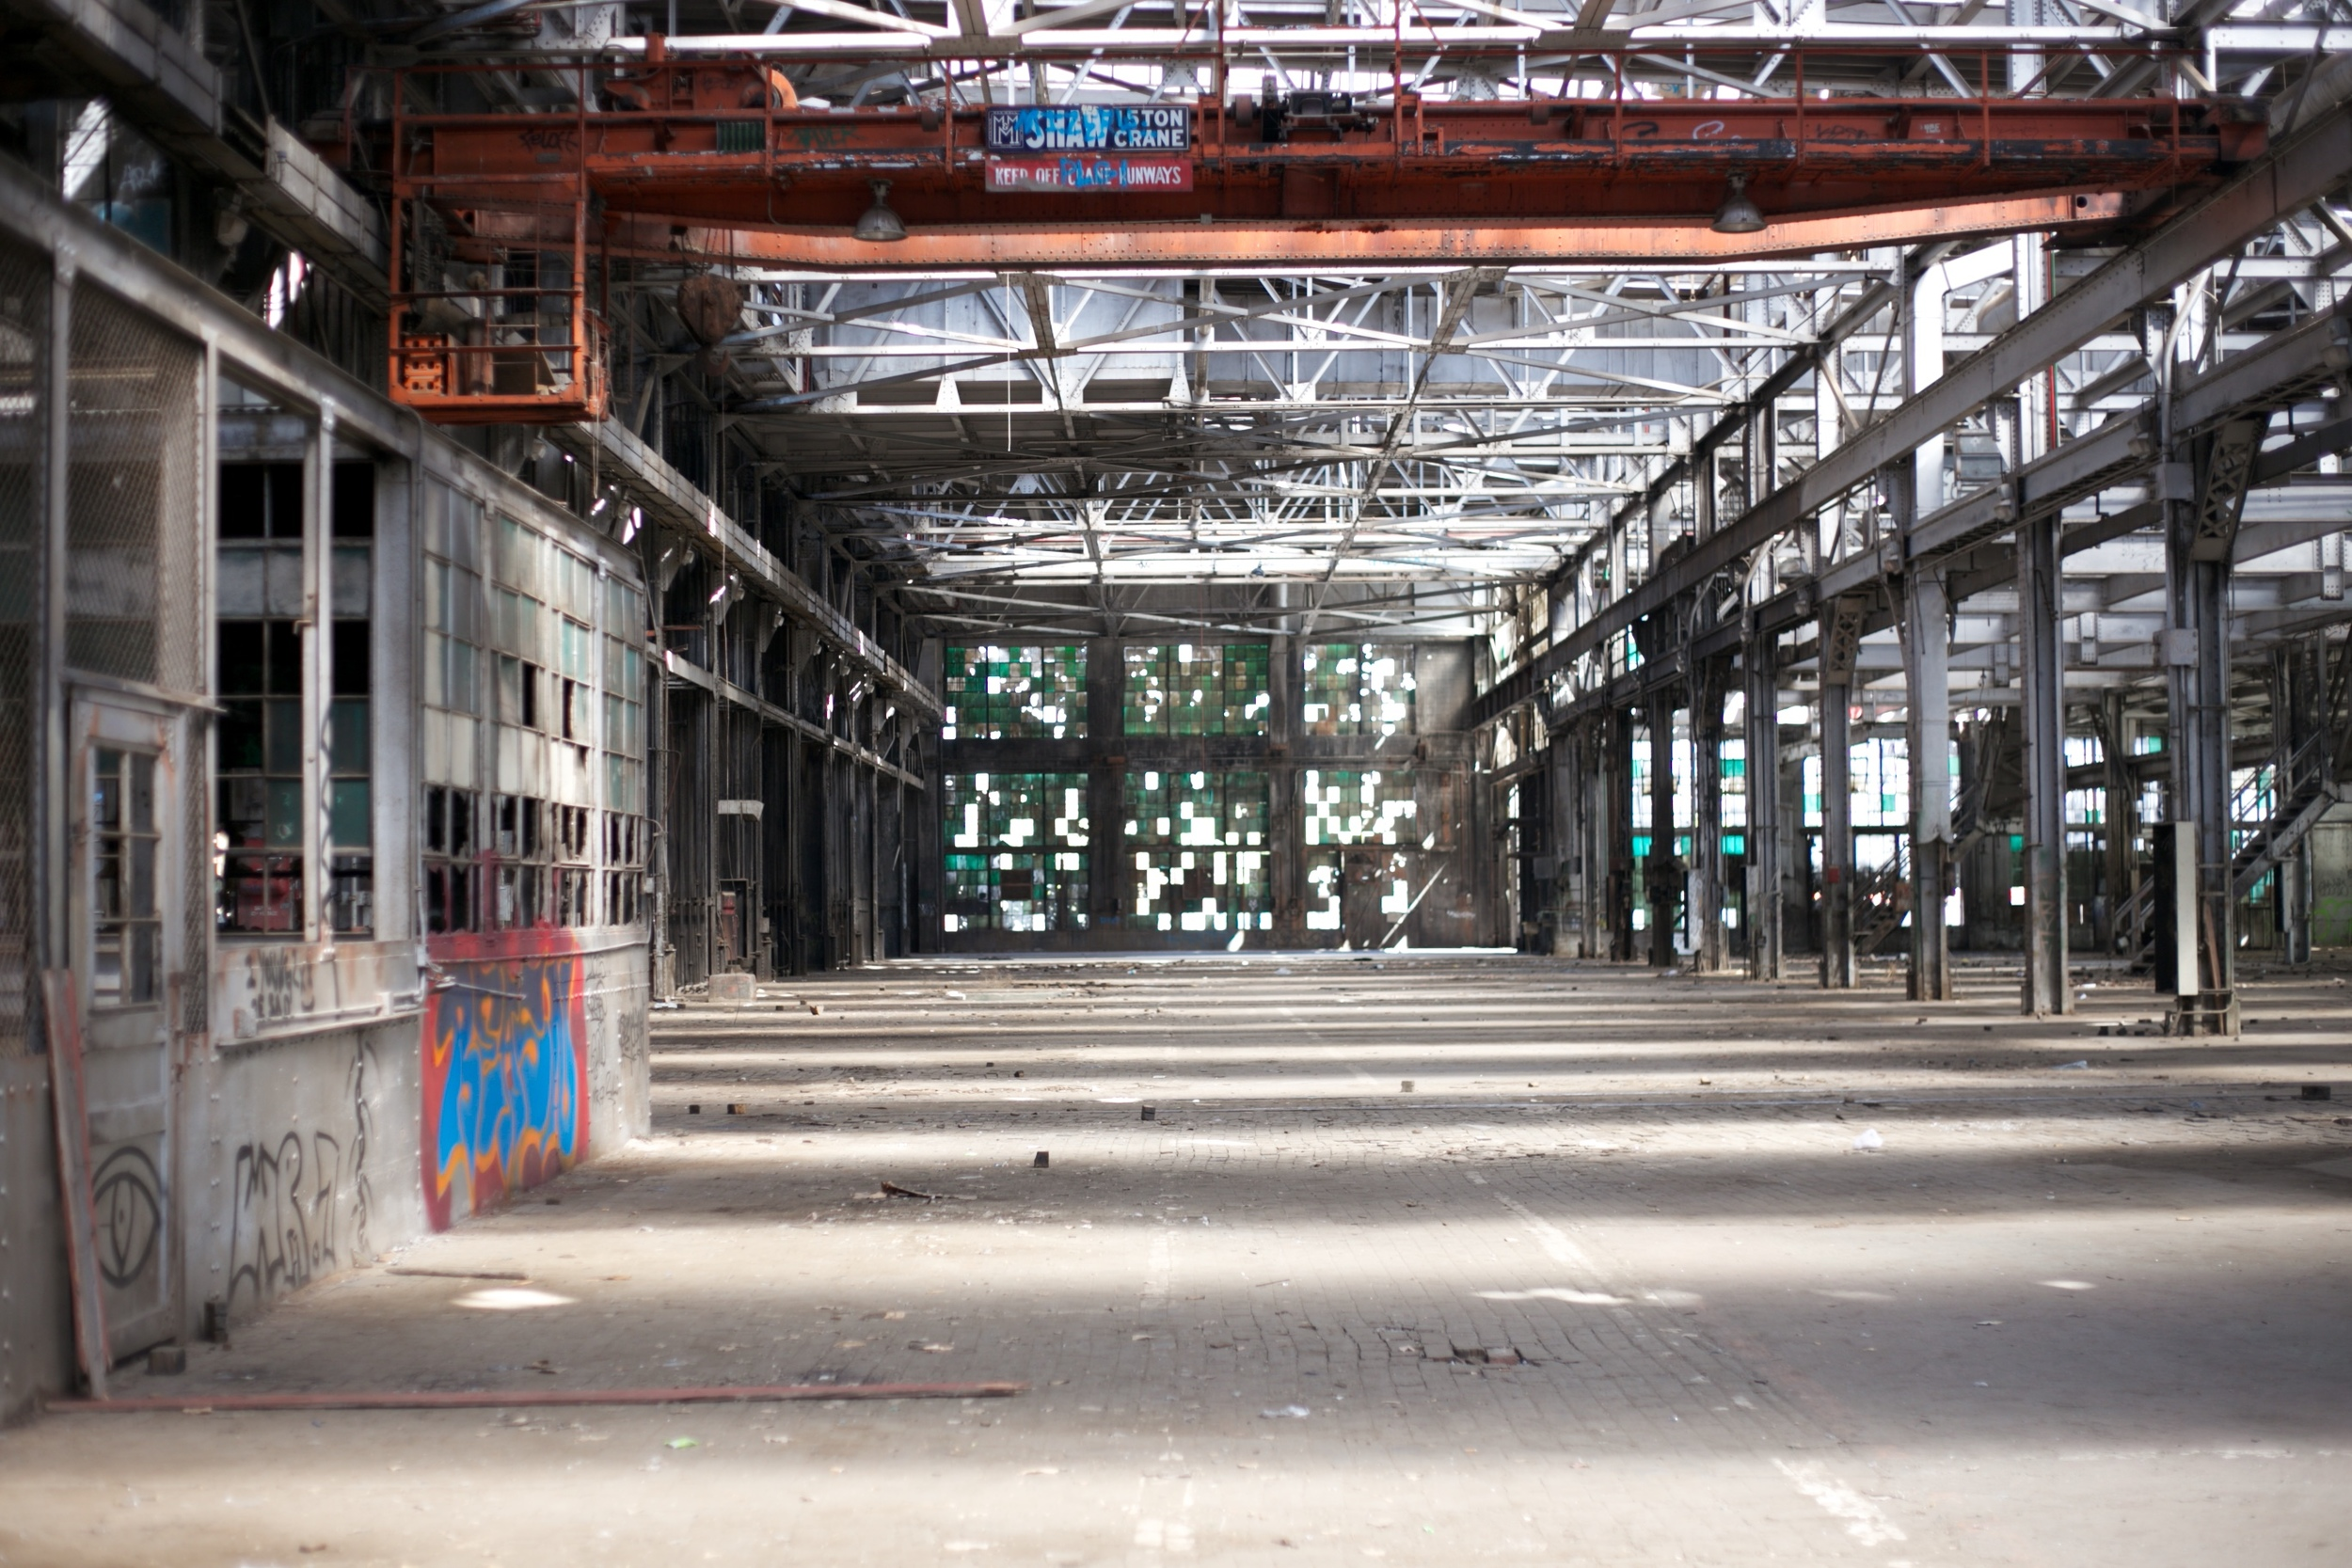 The Rail Yards - a beautiful abandoned complex of buildings in Albuquerque